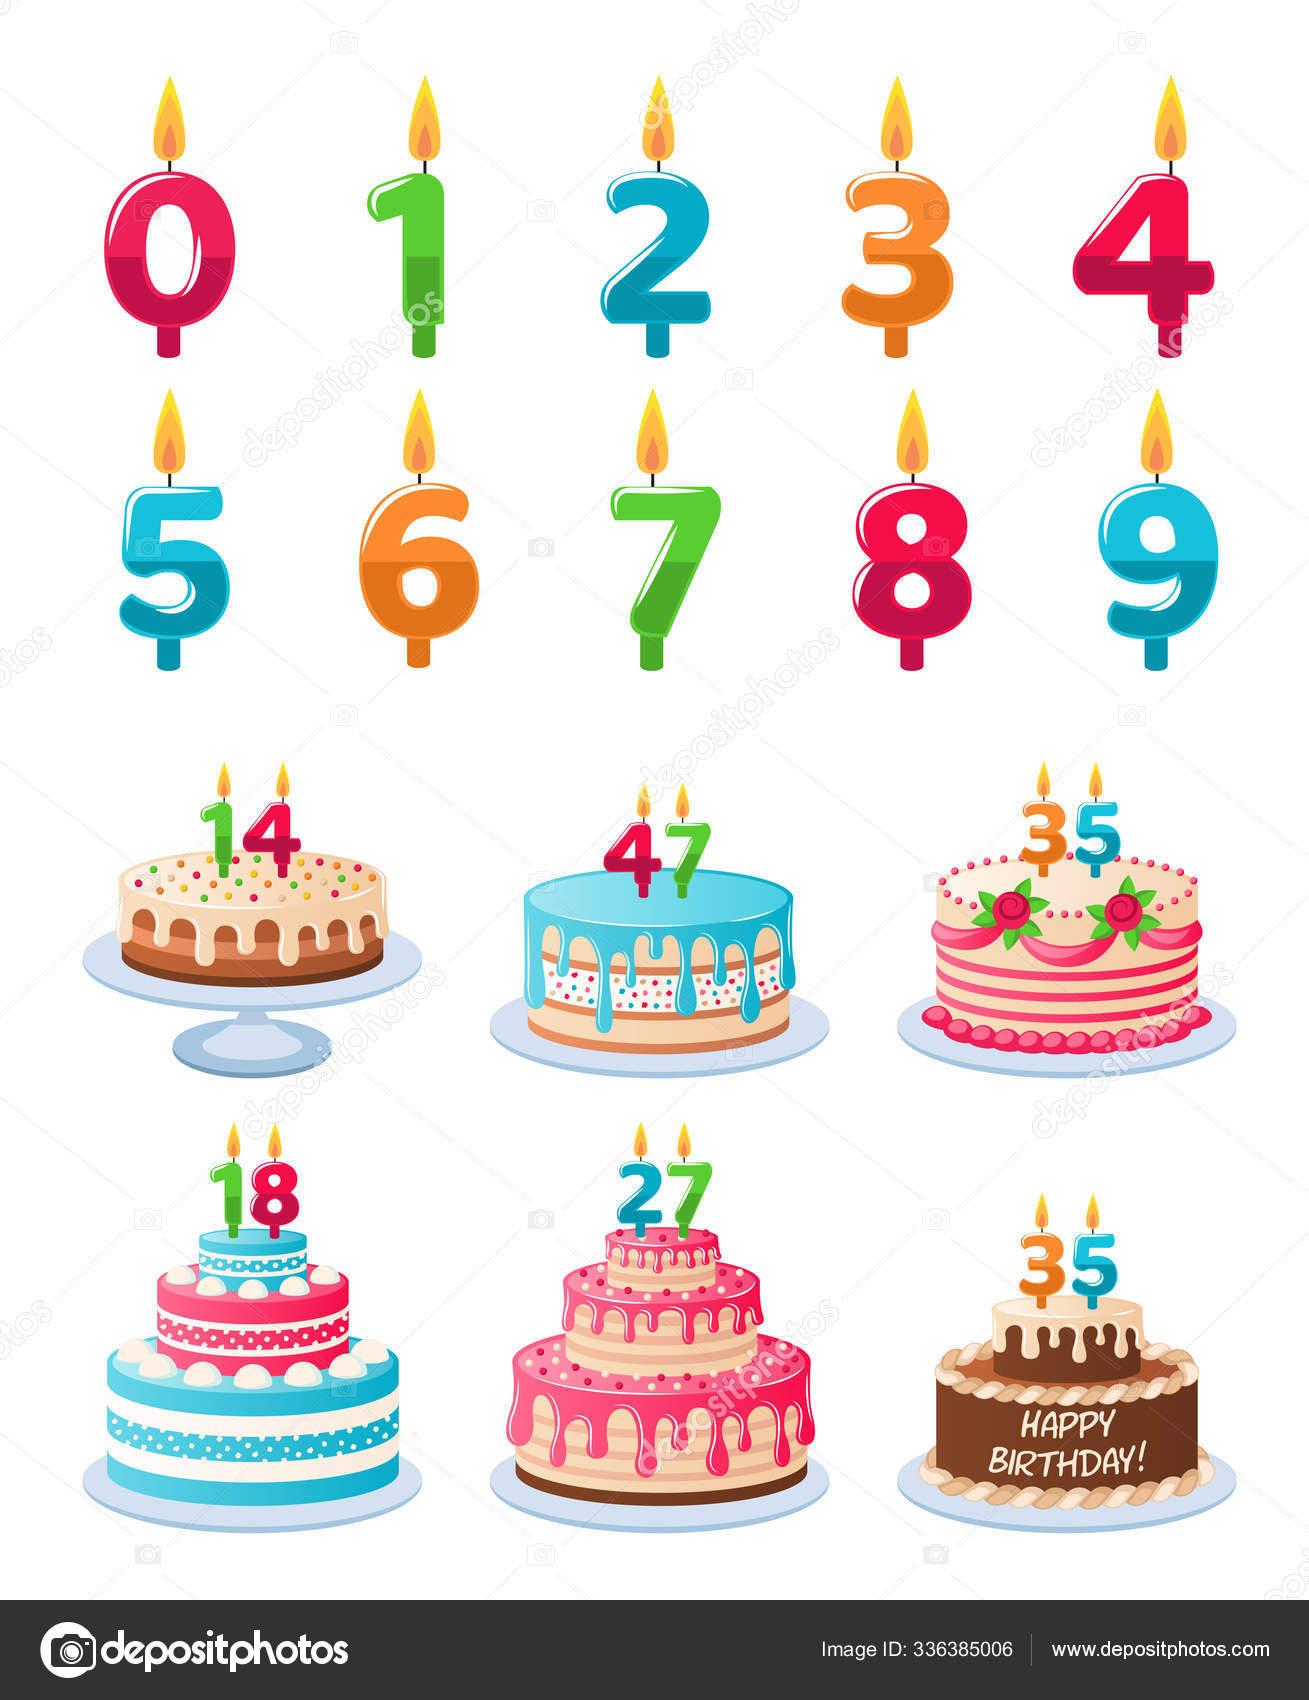 Groovy Cakes With Candle Numbers Anniversary Birthday Cake With Candles Birthday Cards Printable Benkemecafe Filternl